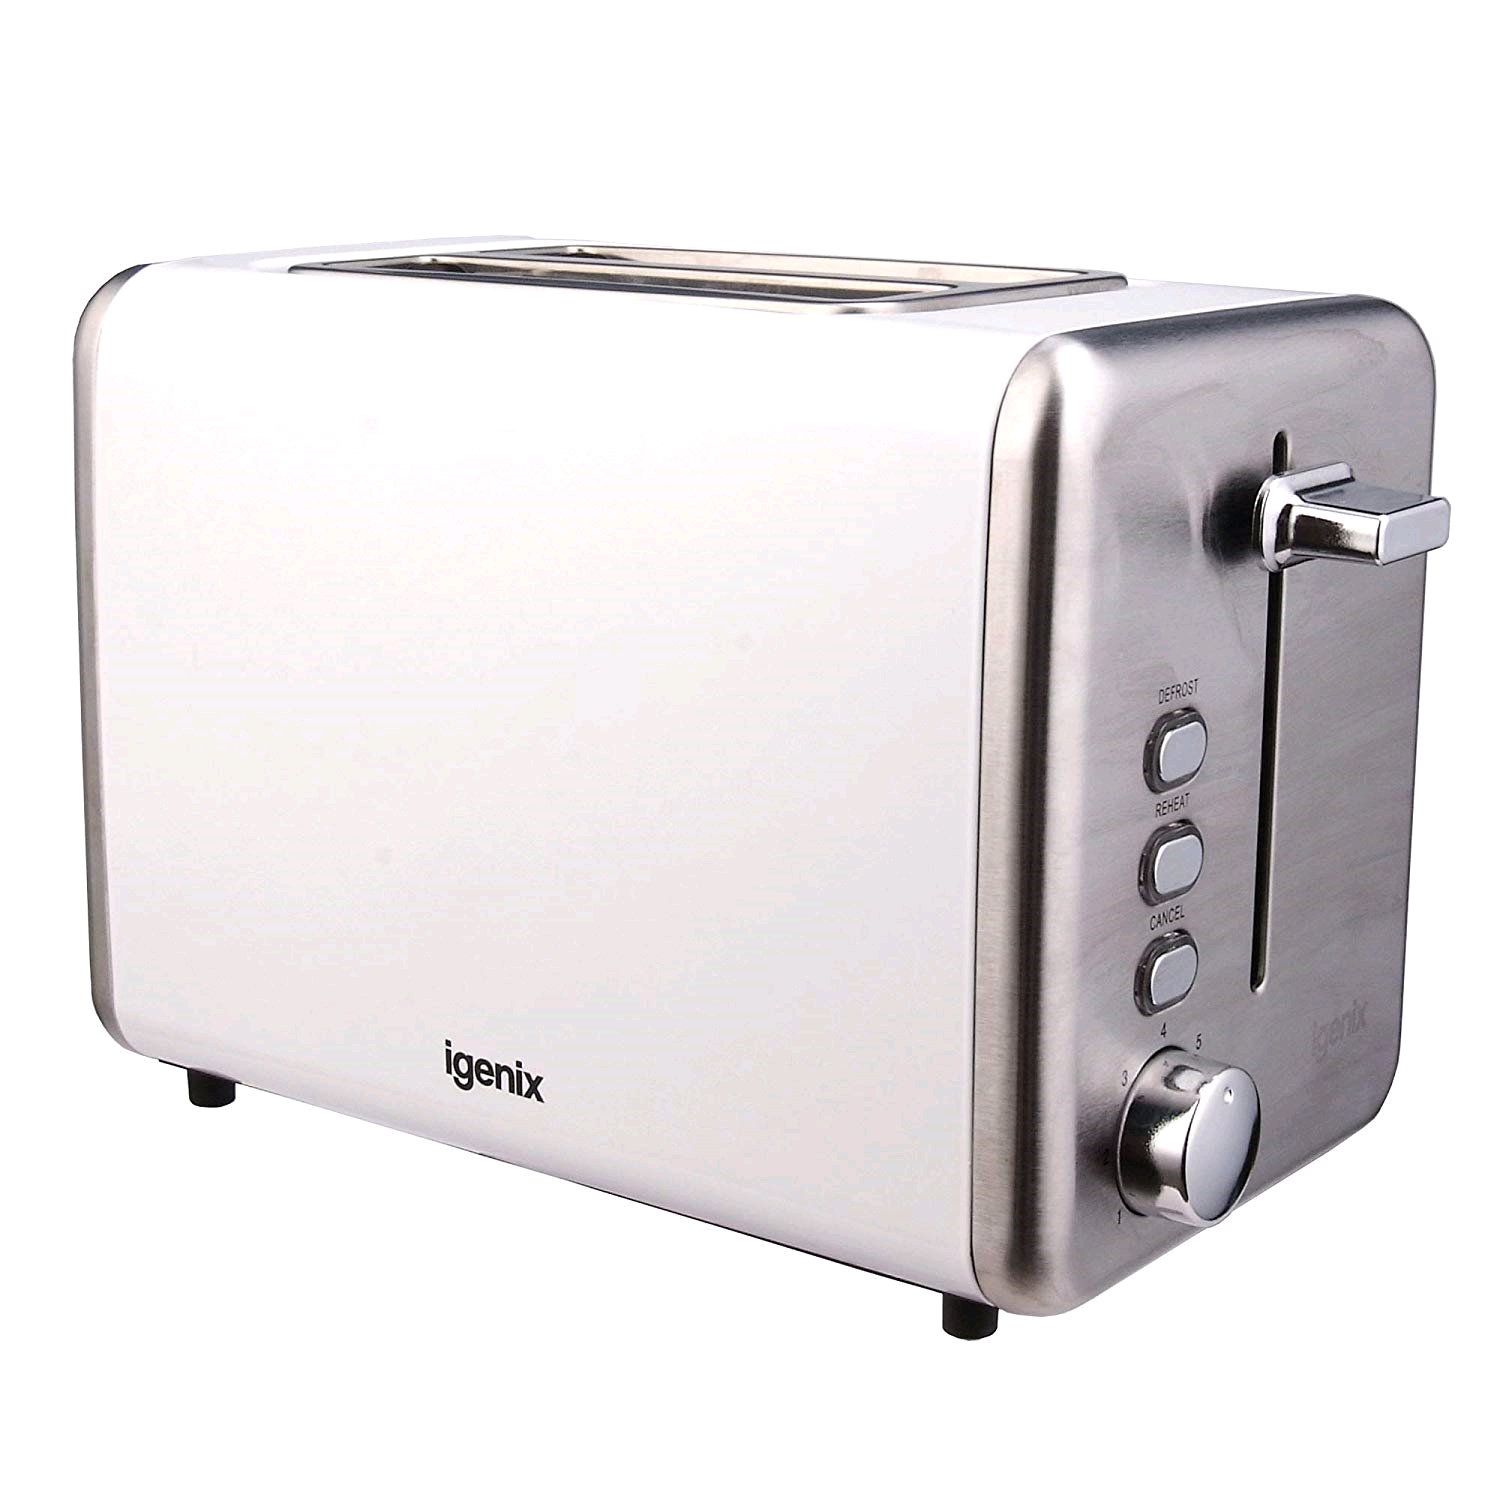 Igenix 2 Slice Toaster White Metal